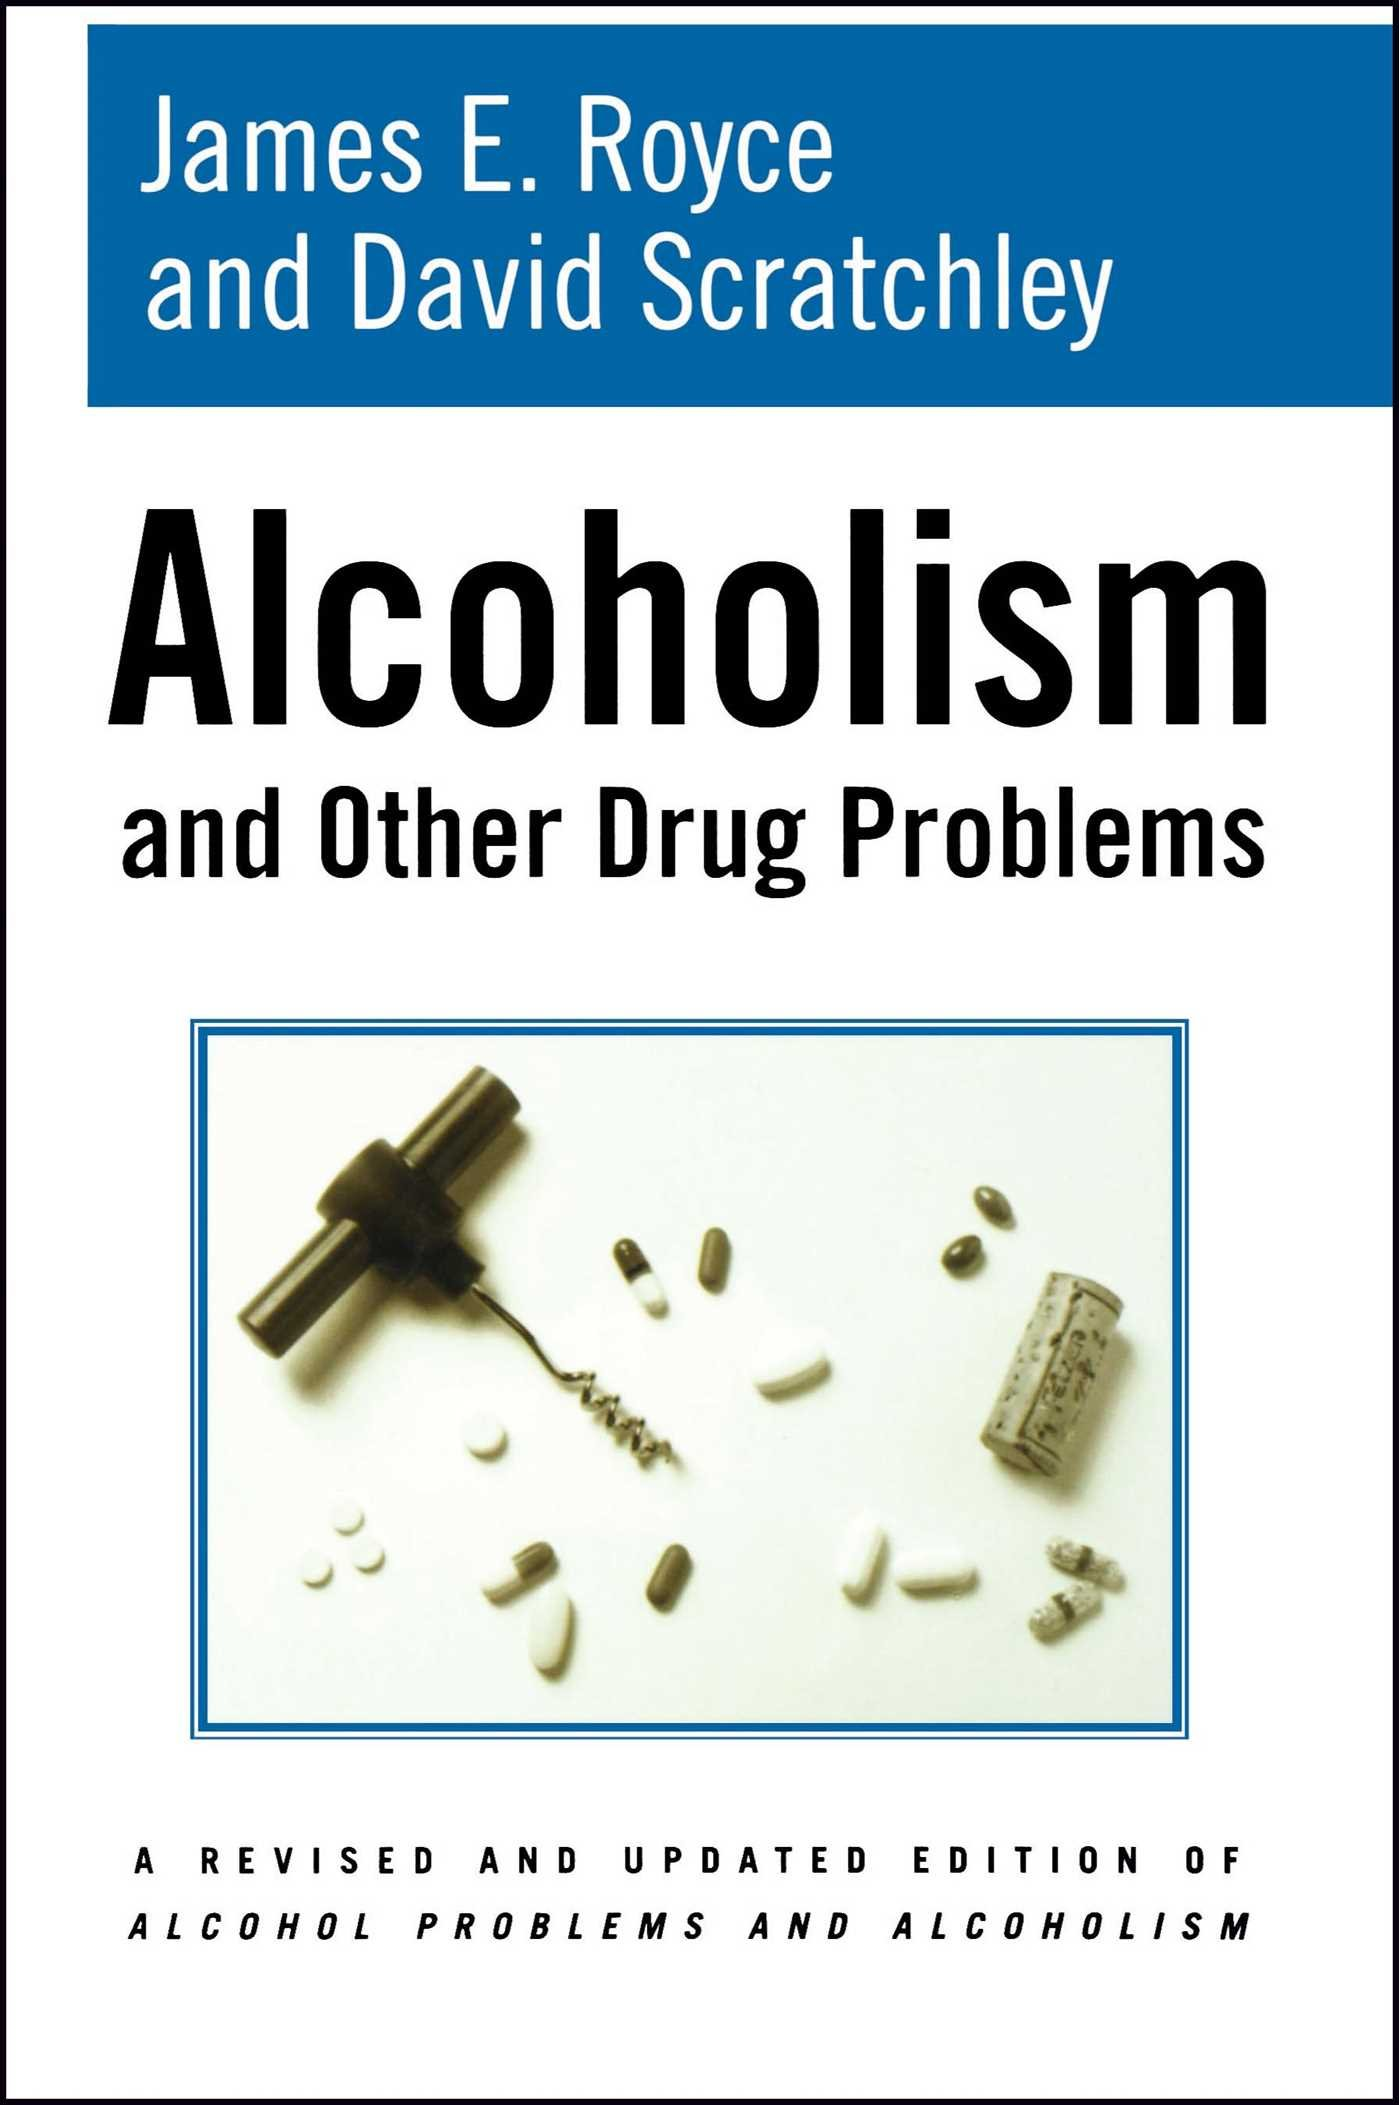 Alcoholism and other drug problems james e royce david alcoholism and other drug problems james e royce david scratchley 9781416567738 amazon books fandeluxe Gallery